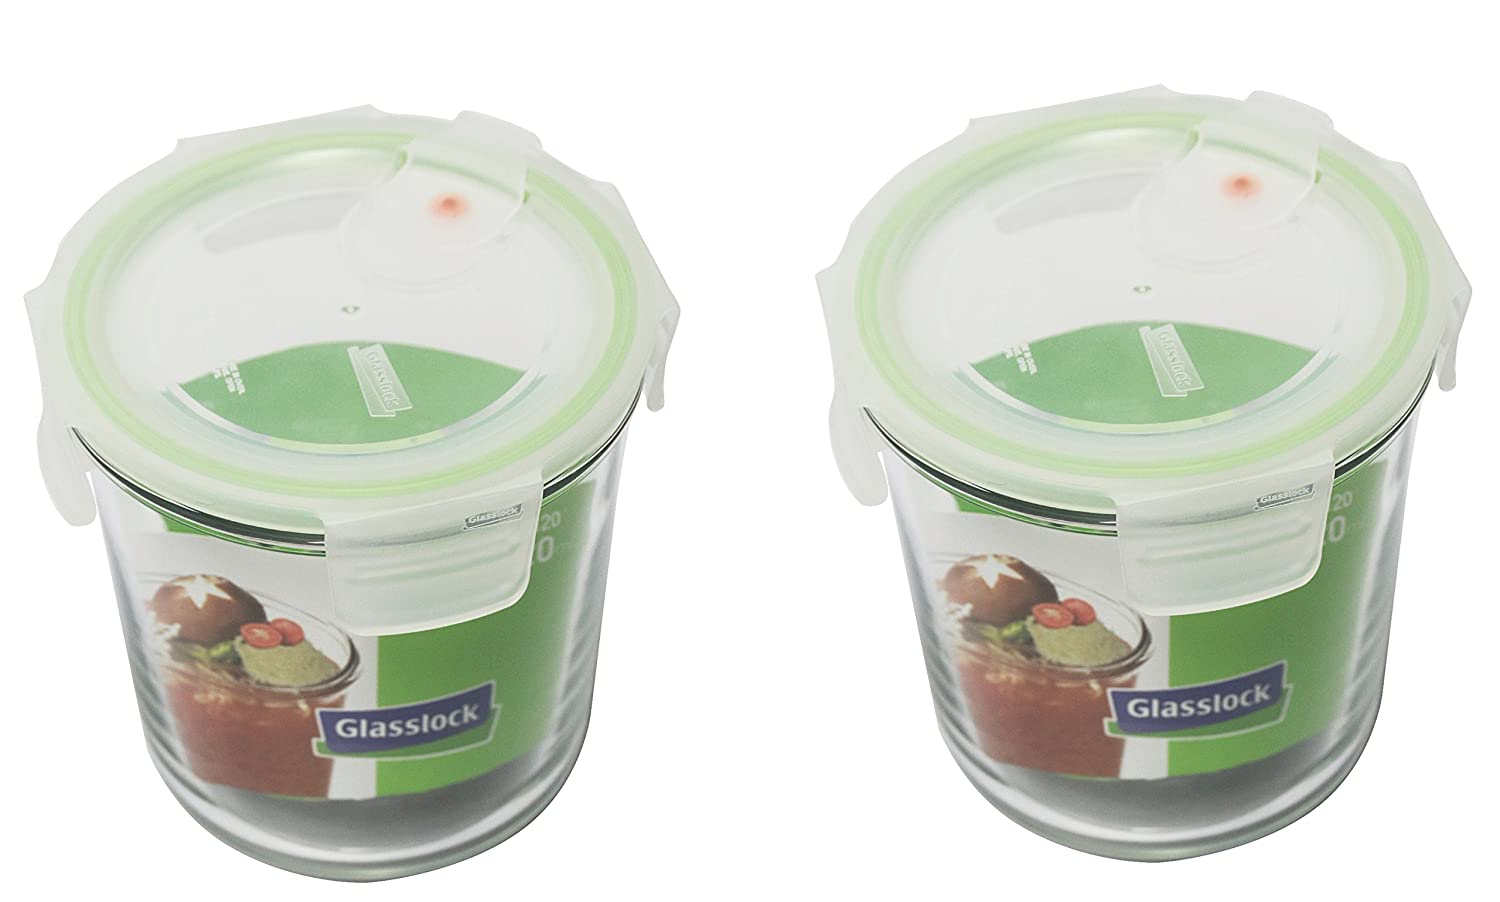 Glasslock, 2x MCCD-072A, 2x 720ml, Round Glass food container Air Type - Microwave